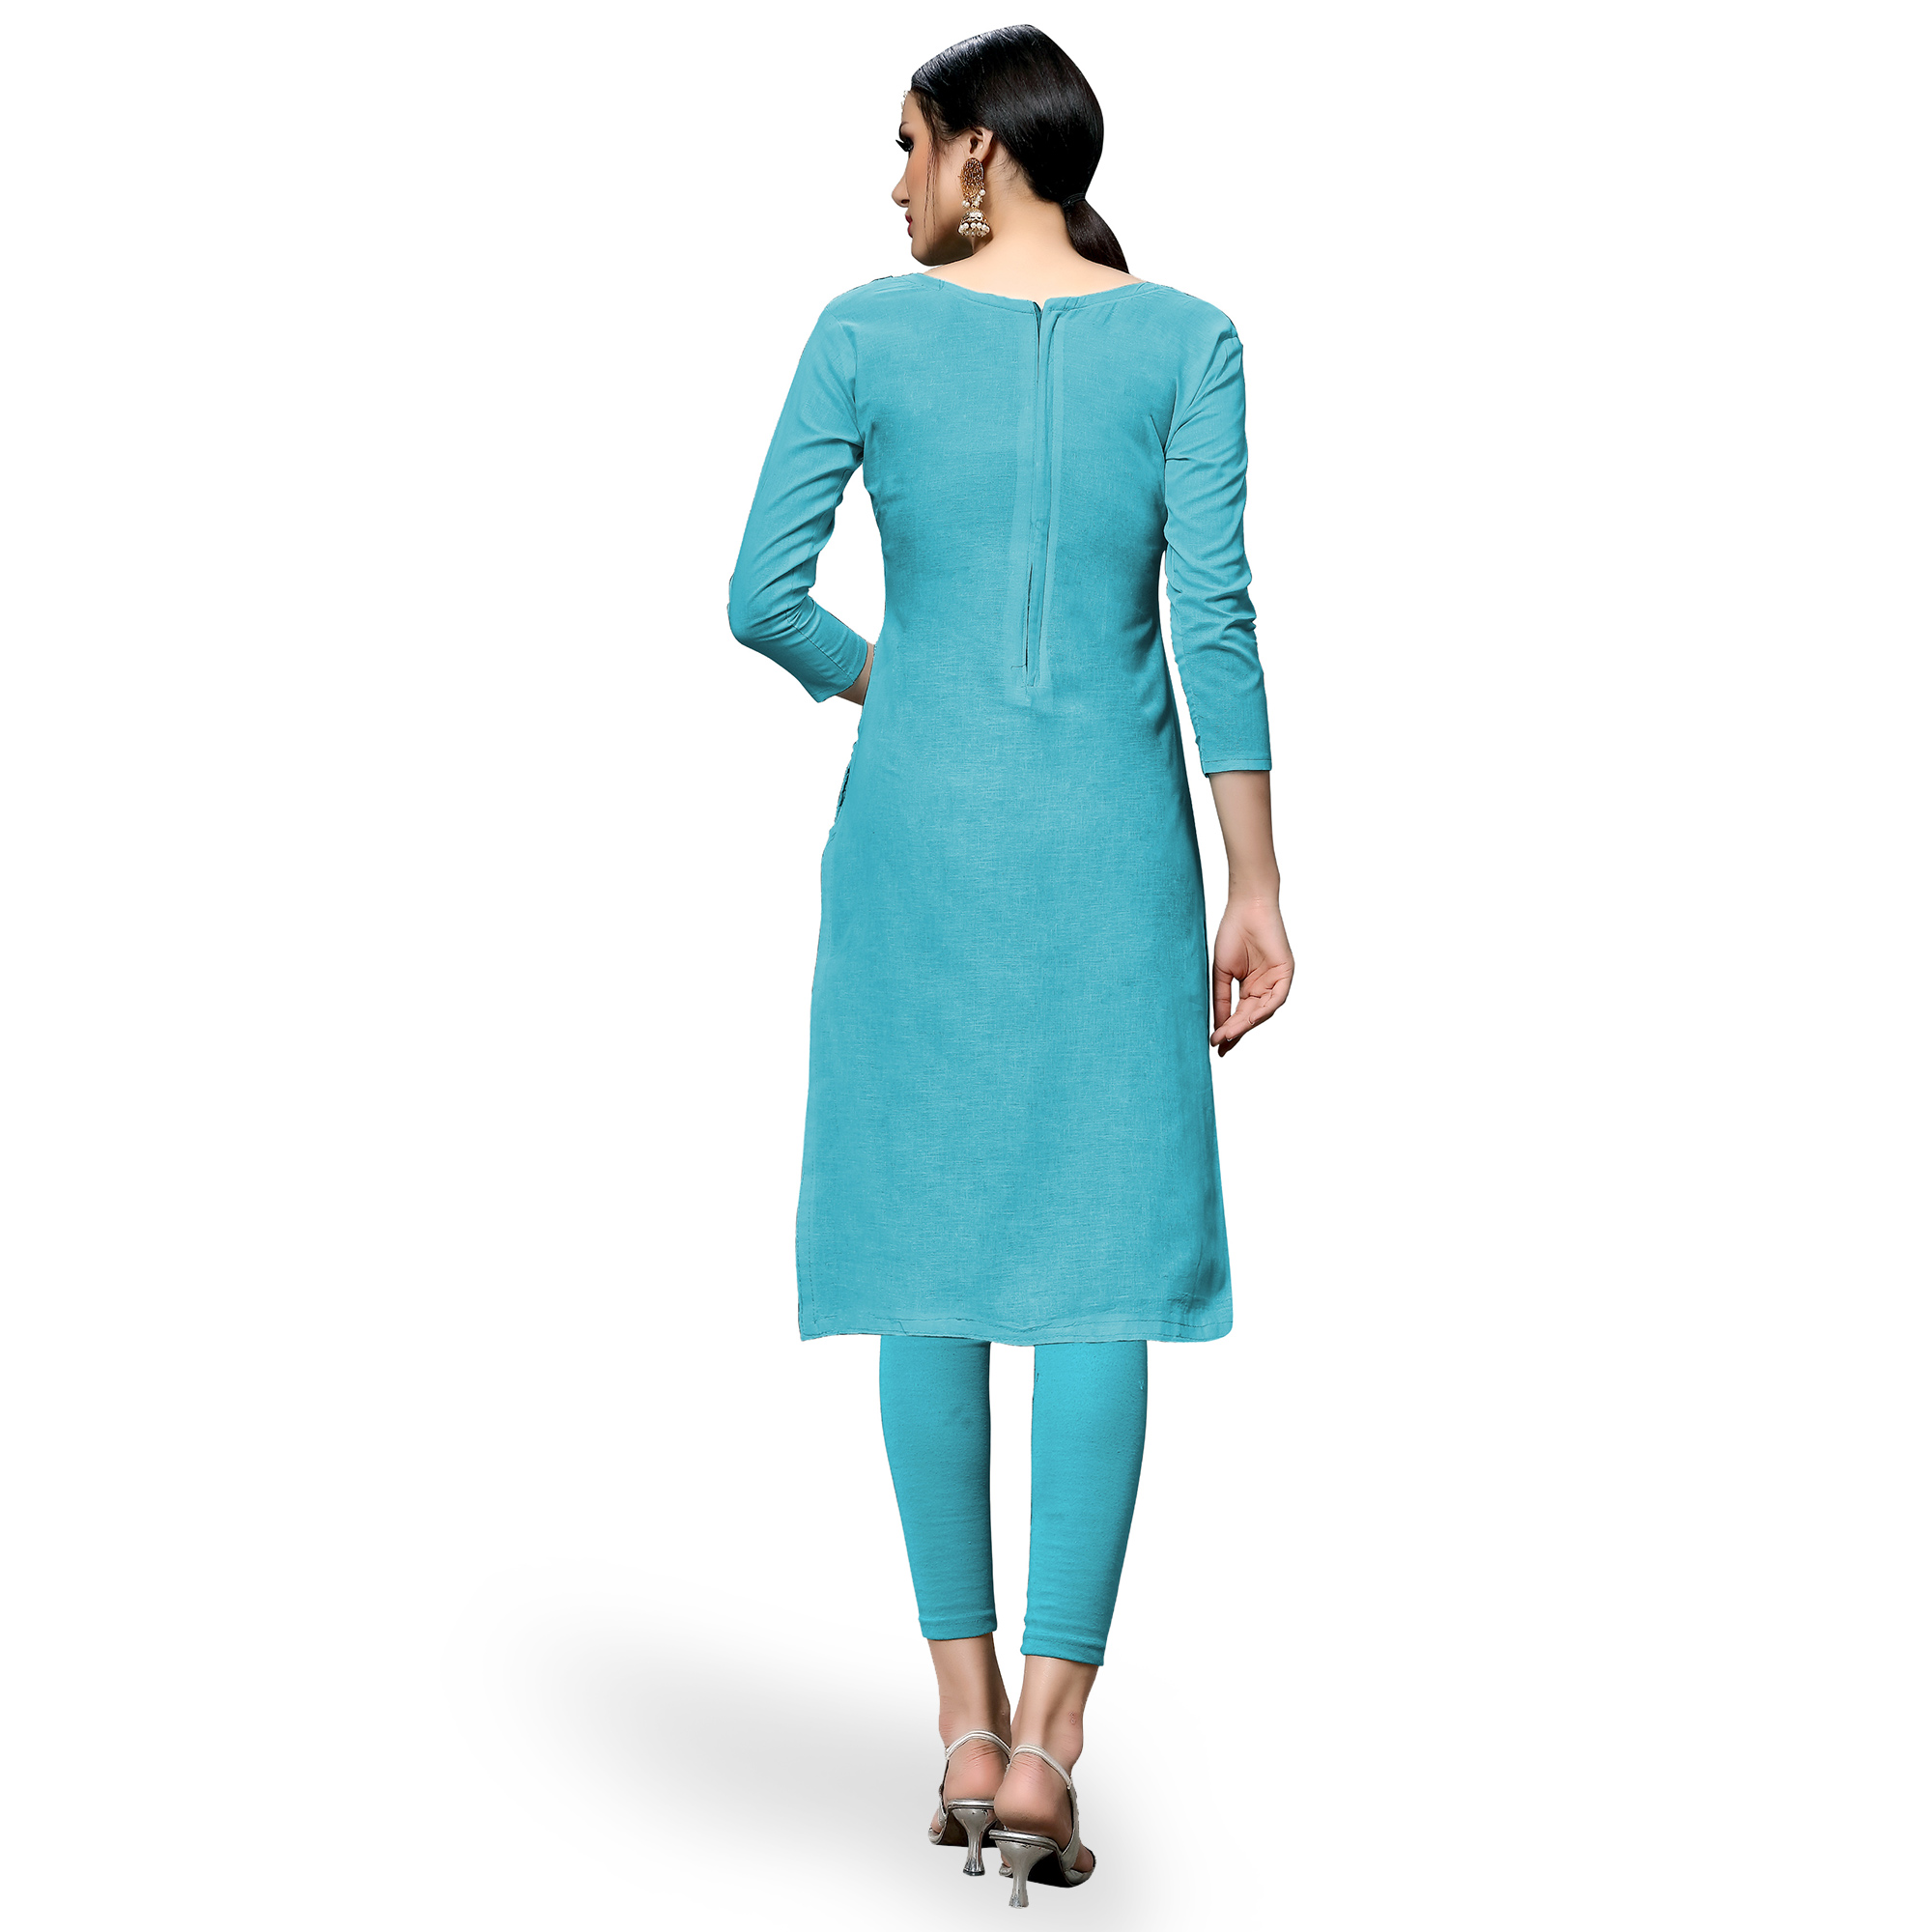 Pleasance Sky Blue Colored Partywear Embroidered Cotton Dress Material